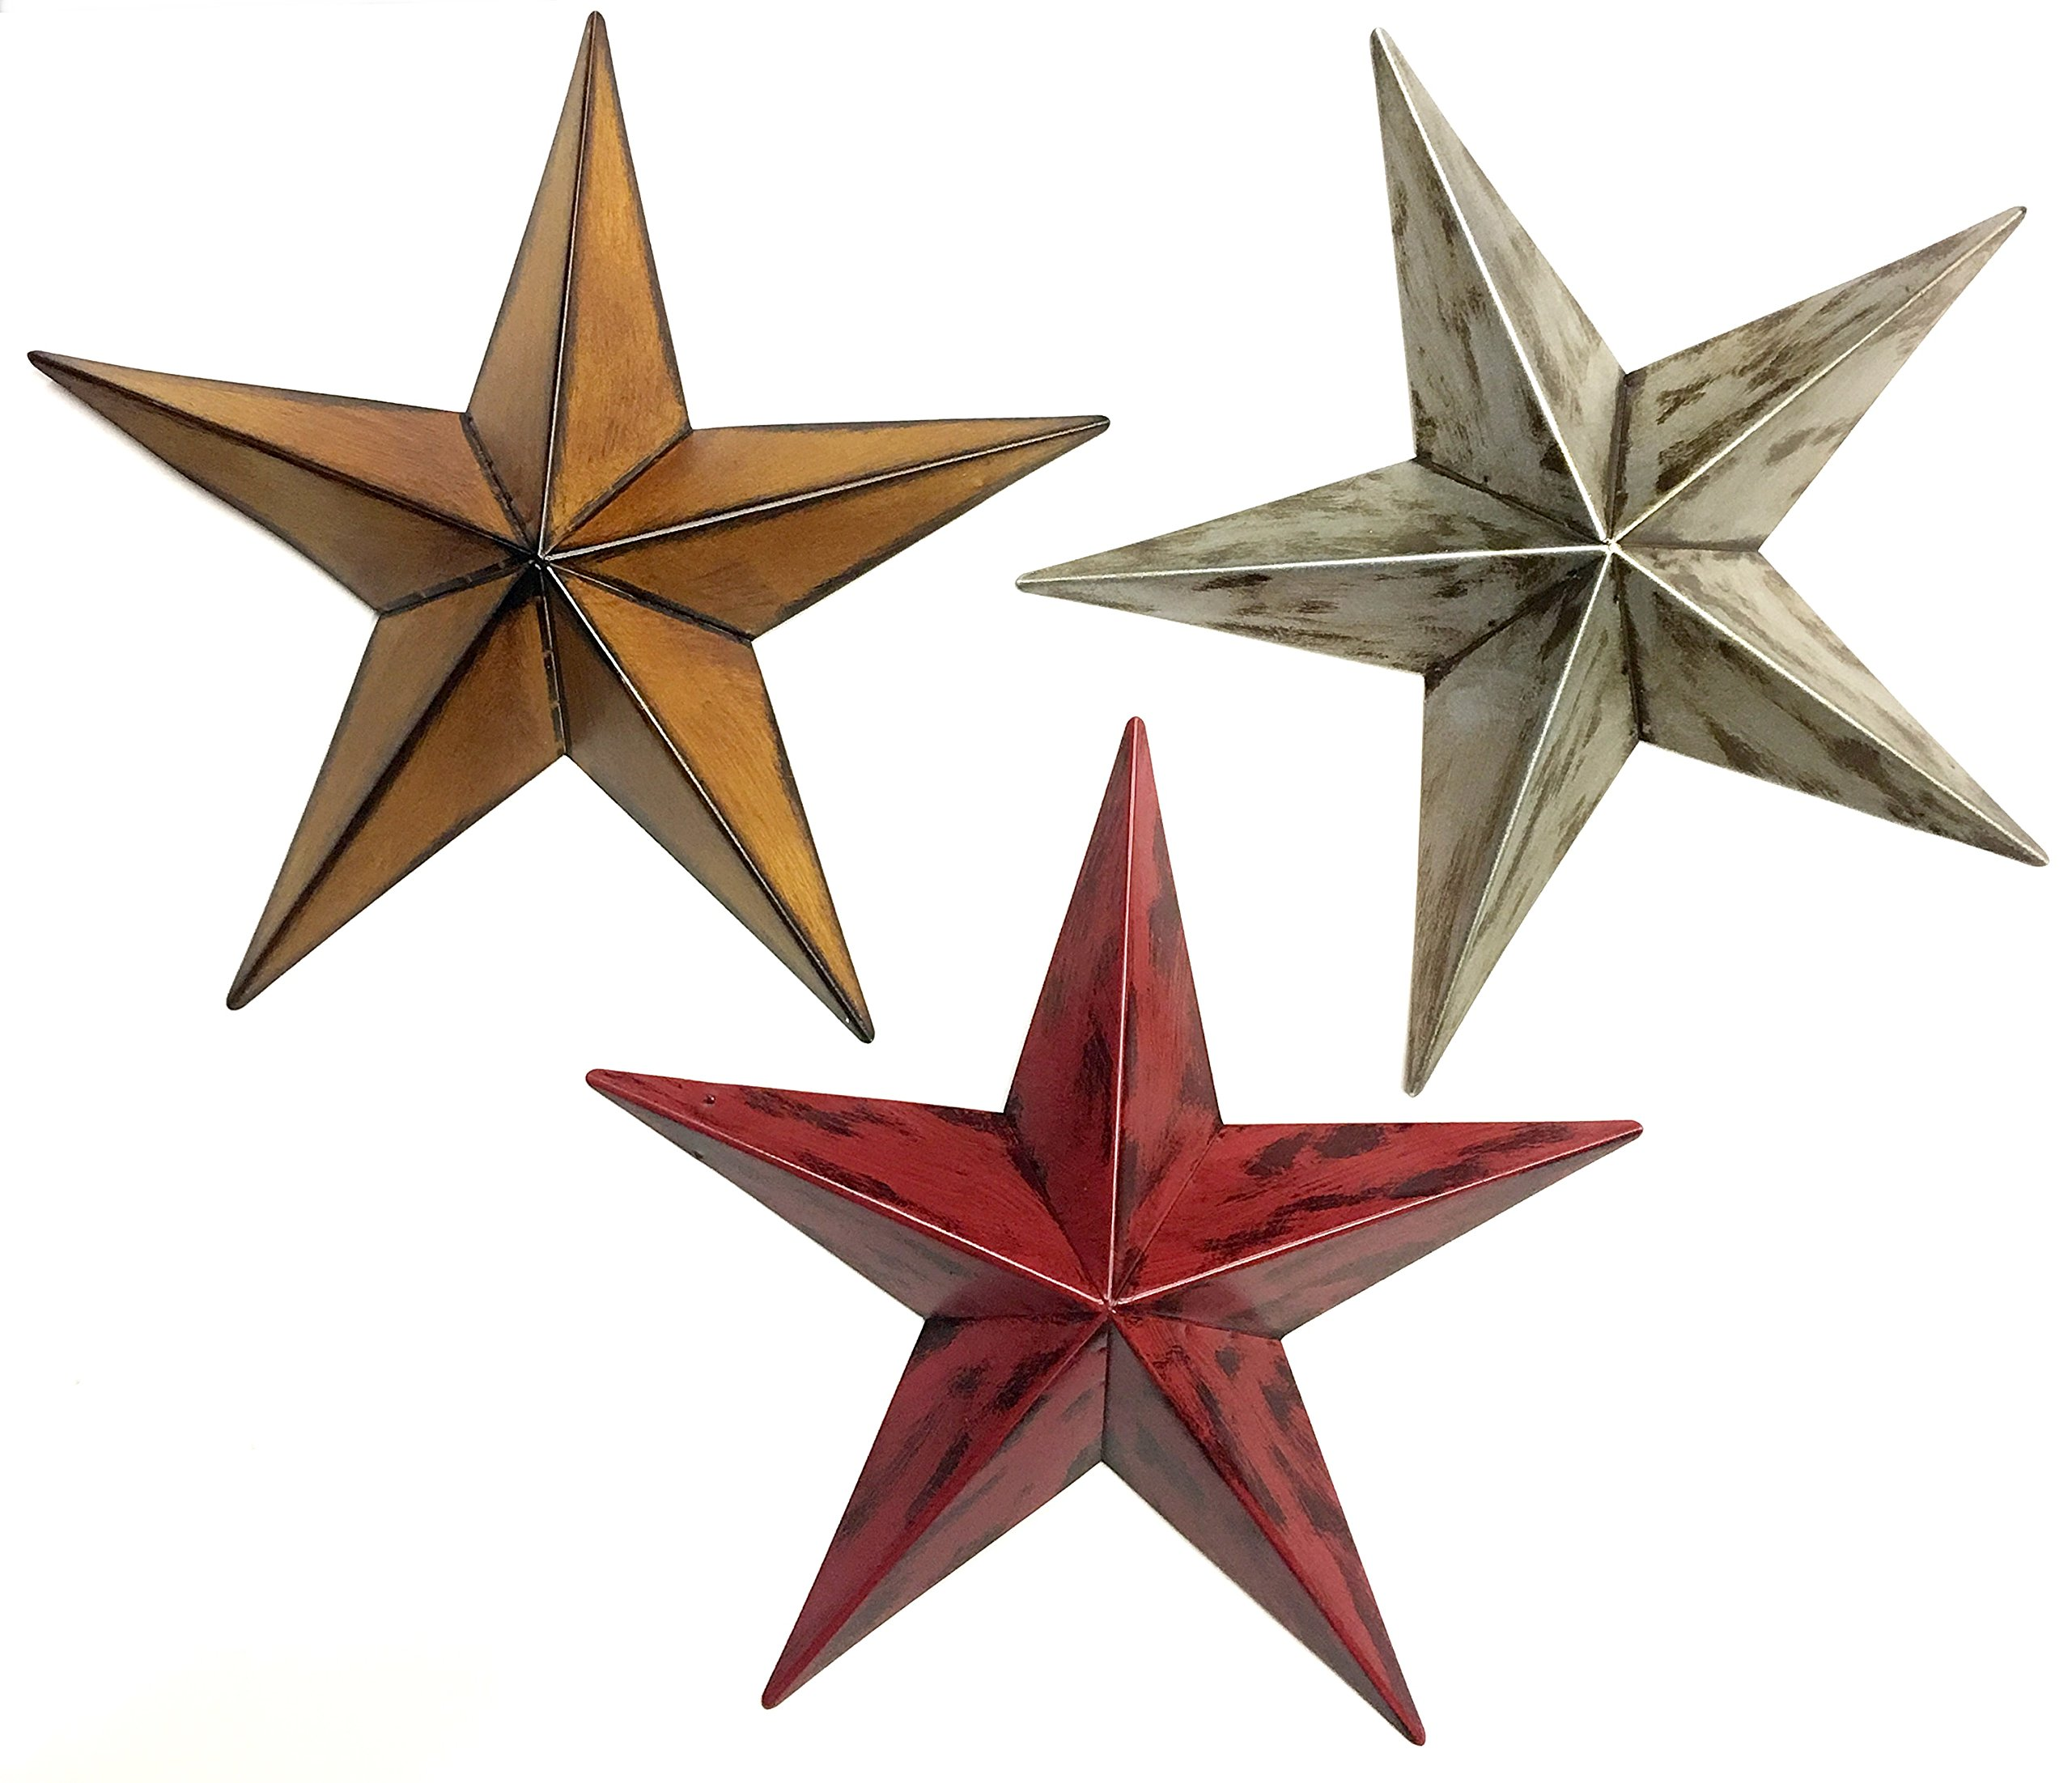 Bellaa 20018 Star Metal Wall Decor Patio Garden Indoor Outdoor Celetic (Multi, 12'' inches Each)